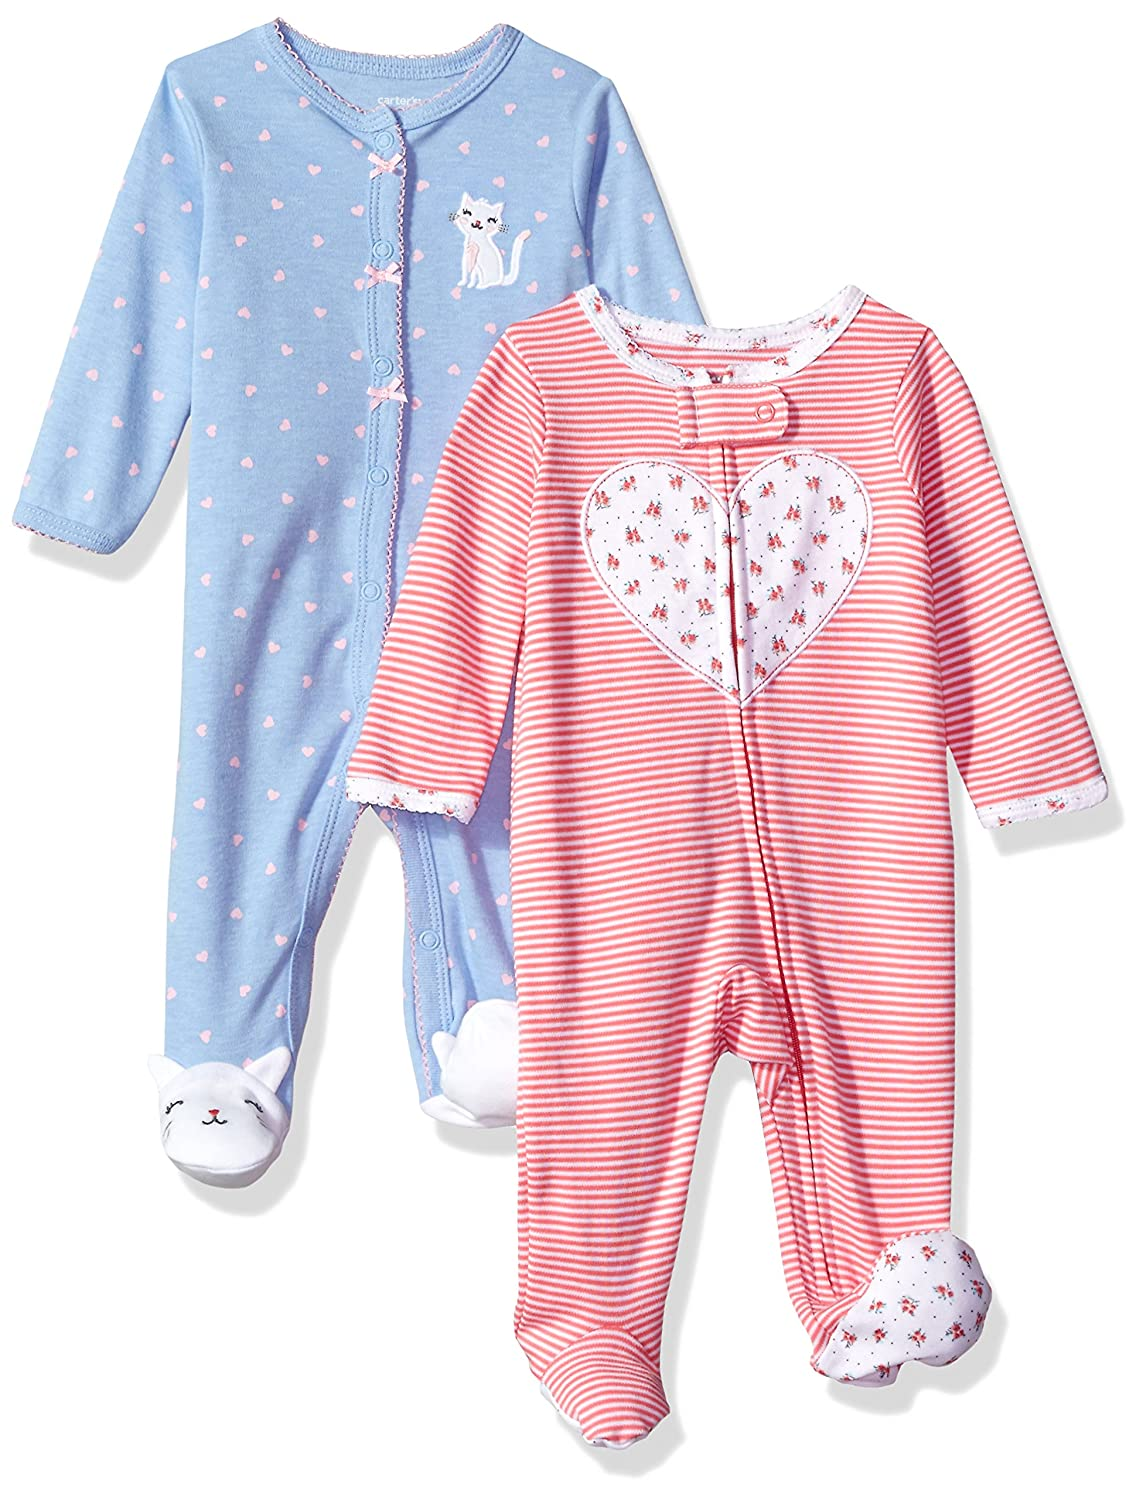 Carters Girls 2-Pack Cotton Sleep and Play